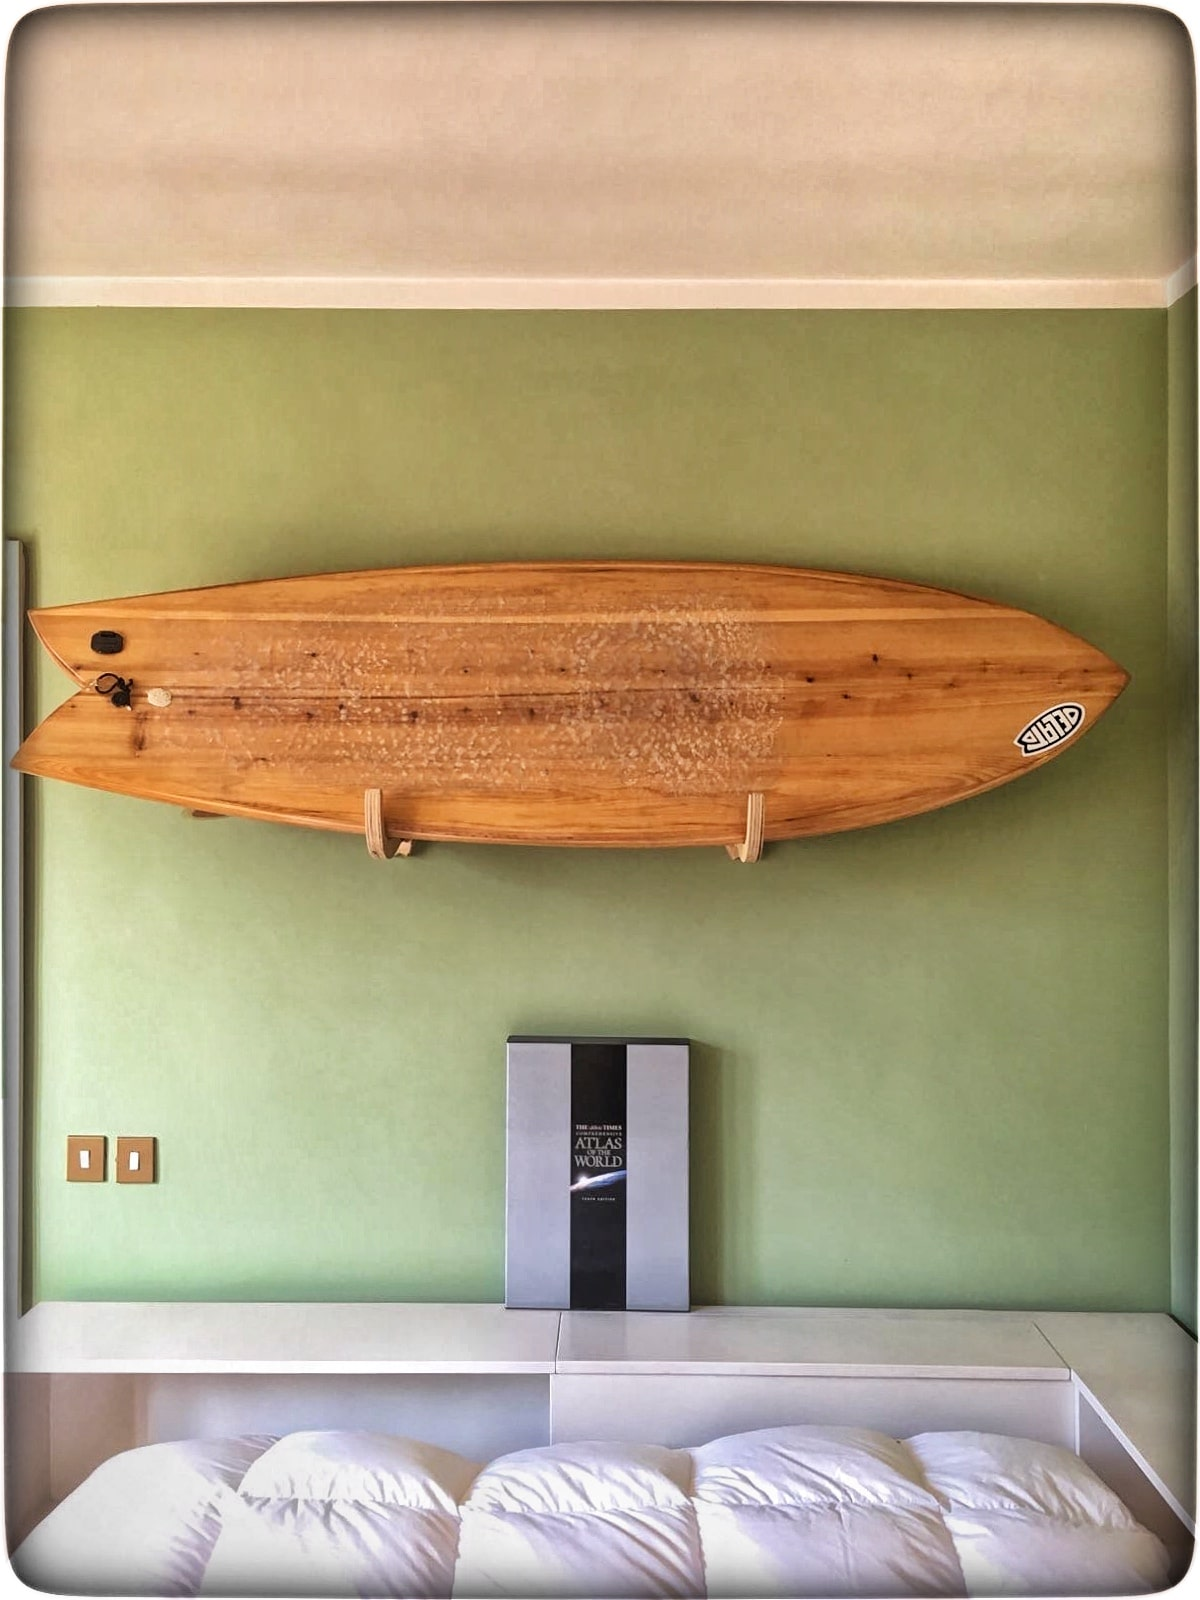 image design ideas surfboard original home nice decor wall style rack of